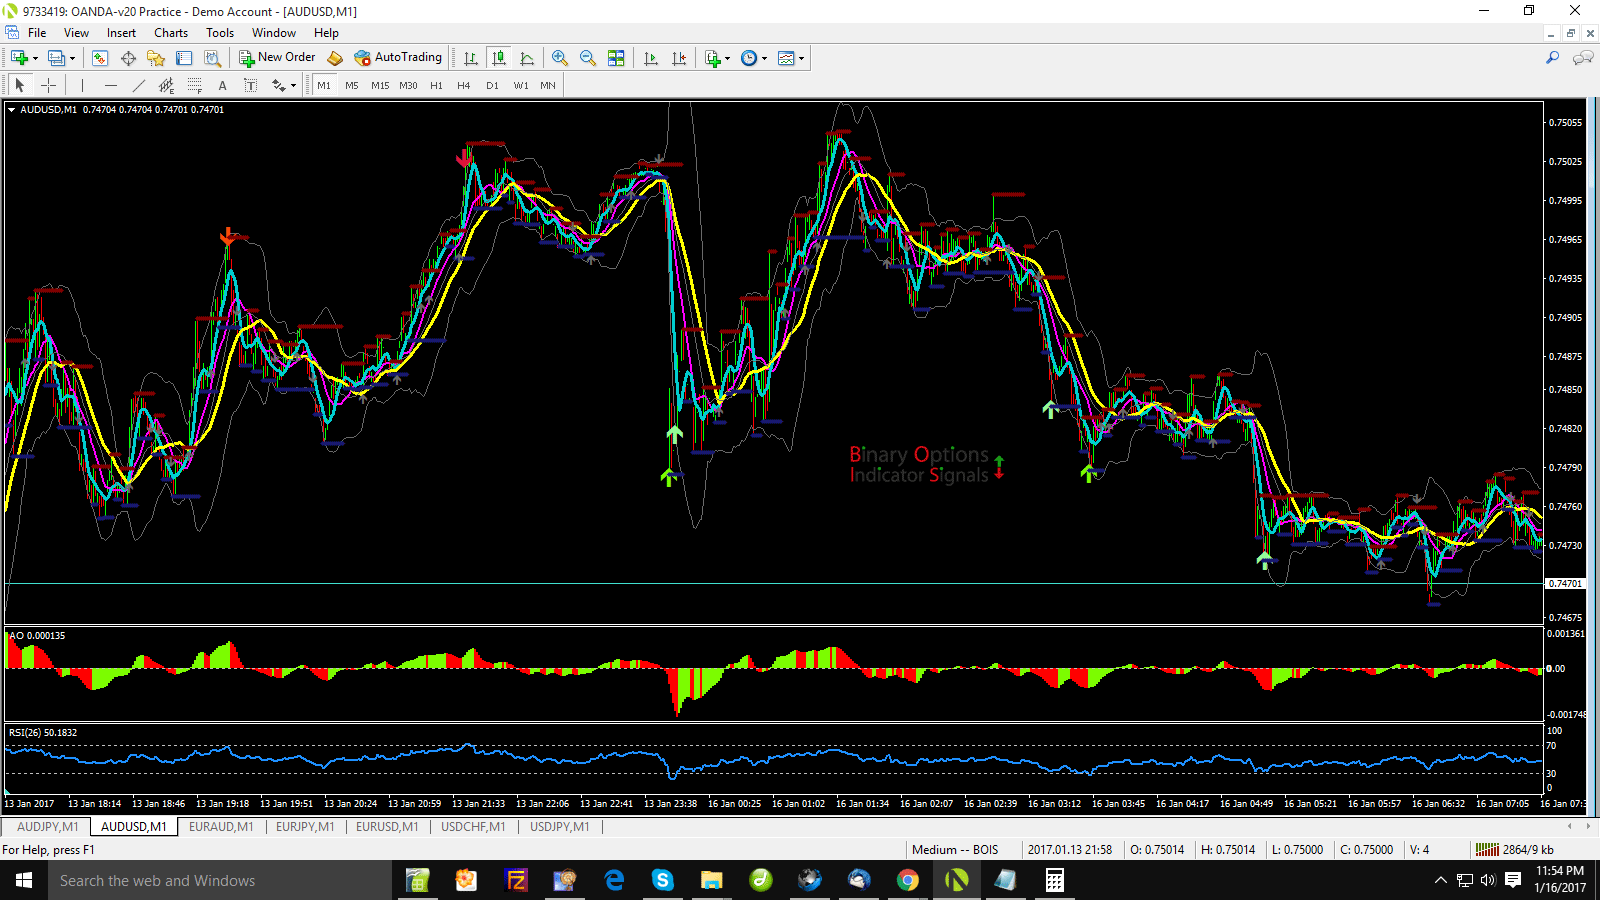 Free binary options trading signals software